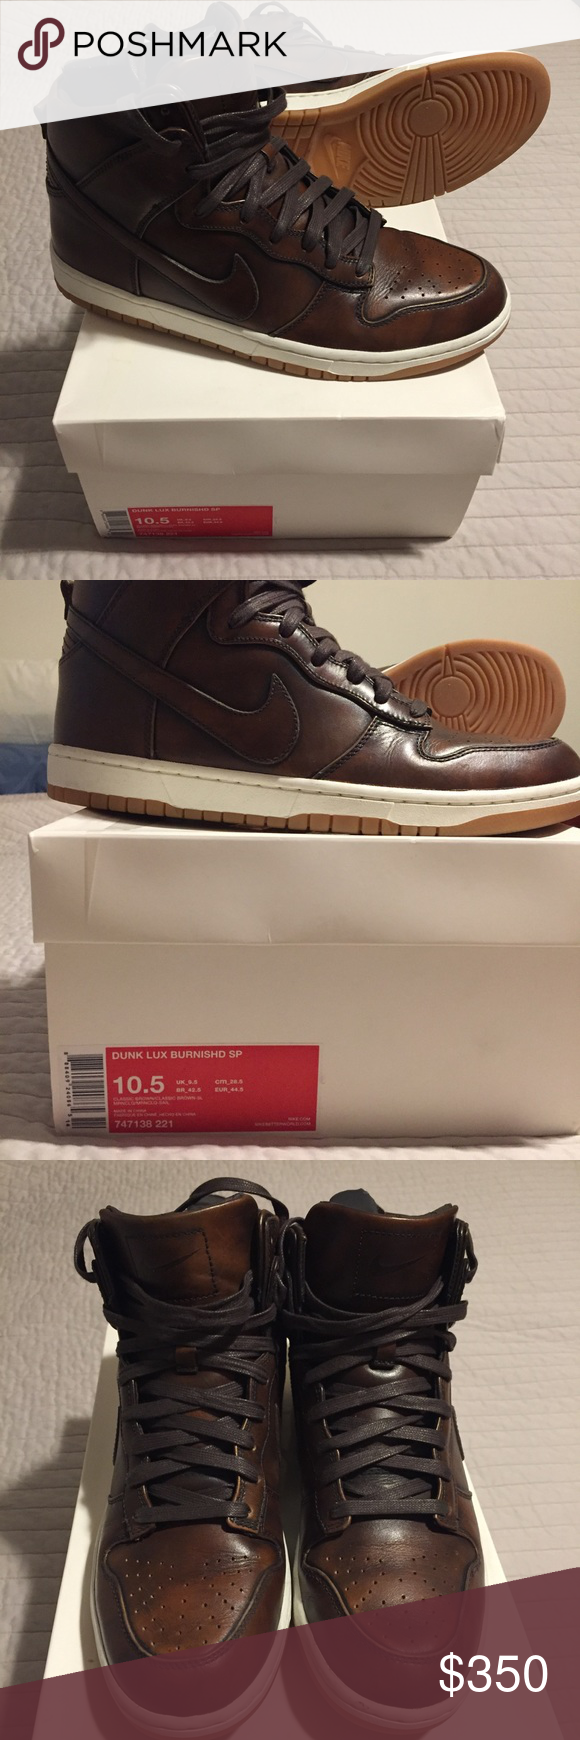 save off 53a27 dc8ca Nike Dunk High Lux SP Burnished Leather size 10.5 Mens size 10.5. Barely  worn. Excellent condition. Premium leather upper with a gum rubber sole.